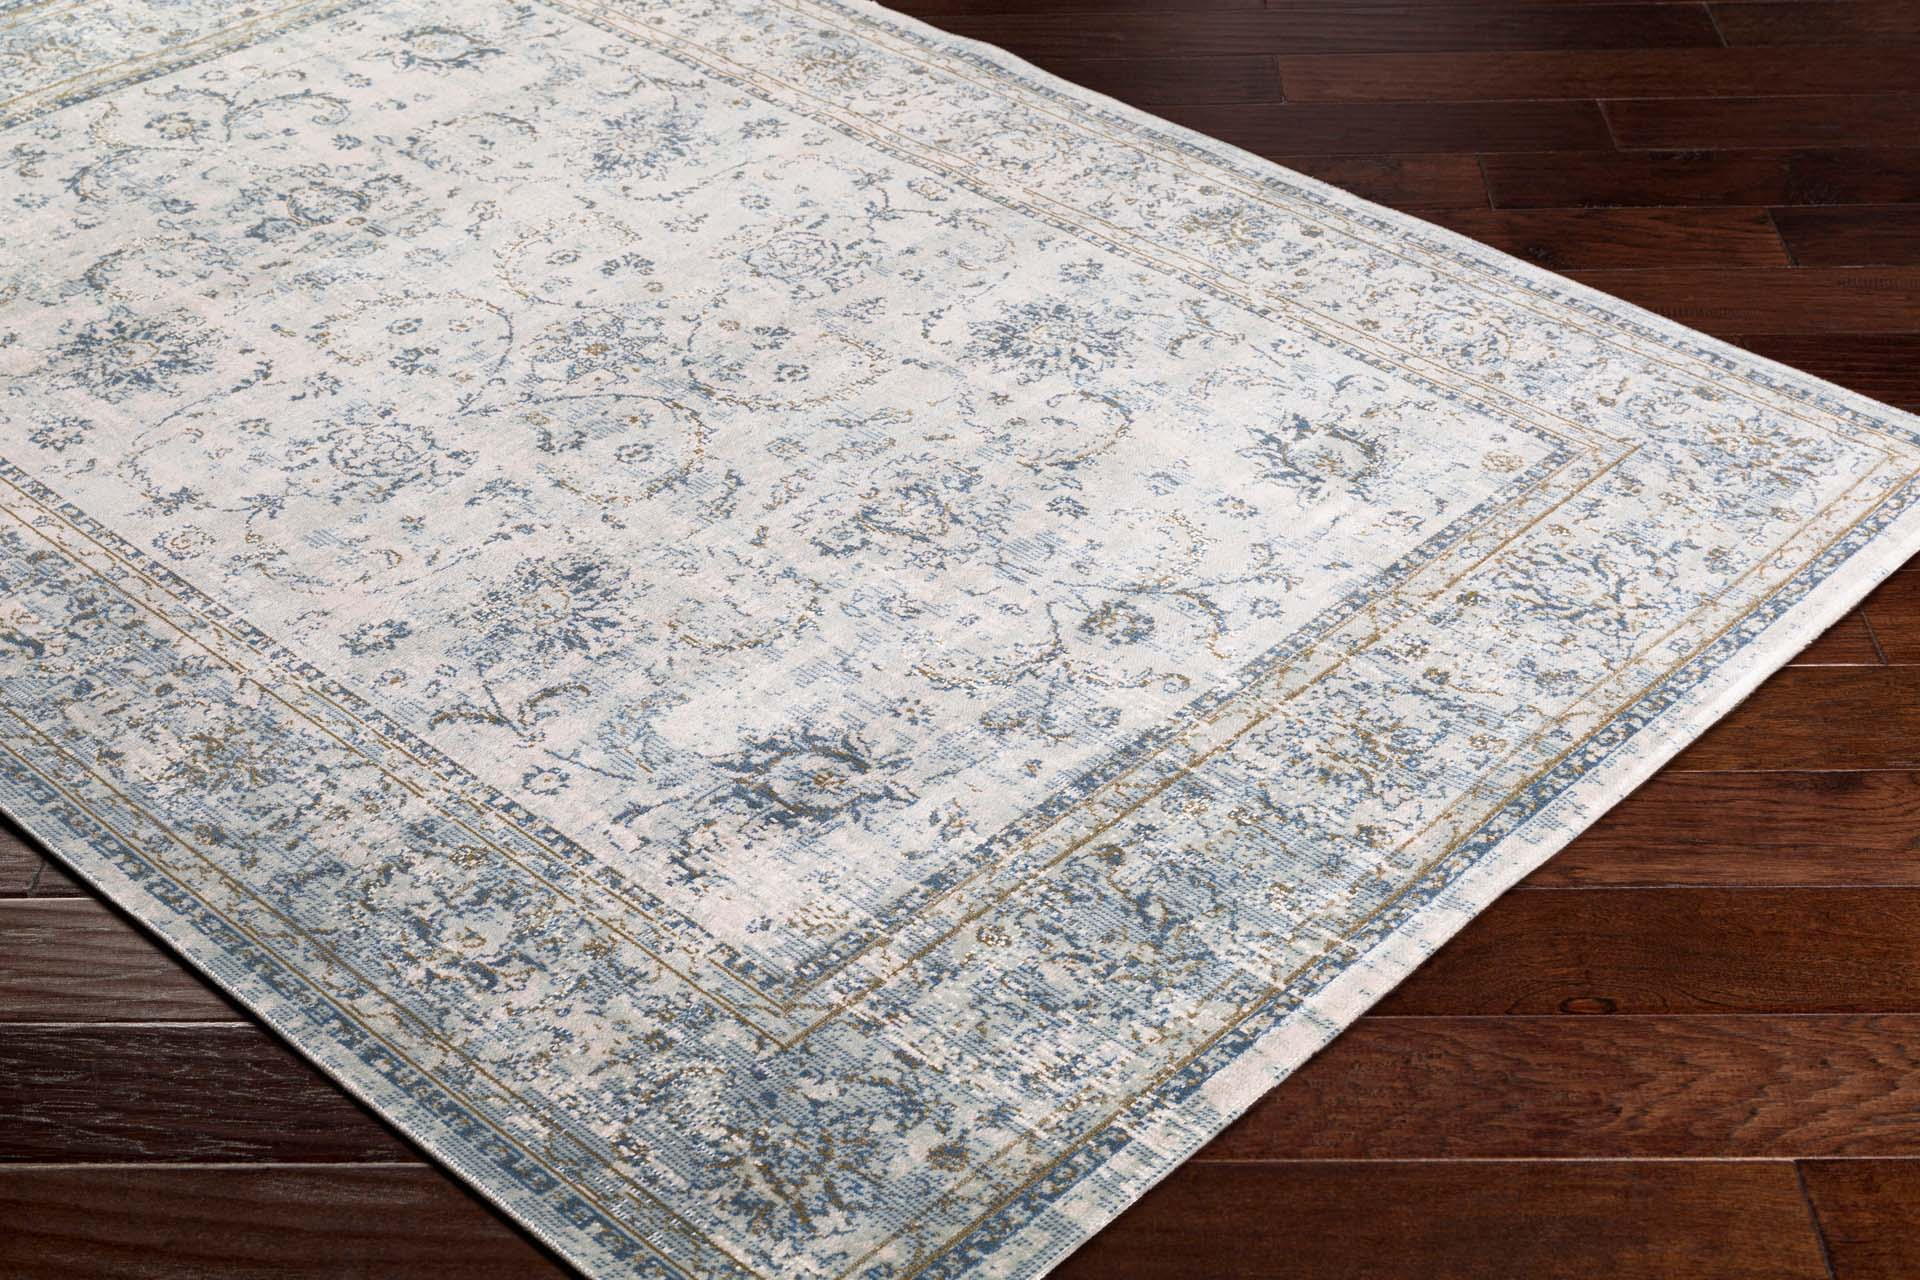 Classic machine woven area rug in beige with blue and green accents on cherry wood floor